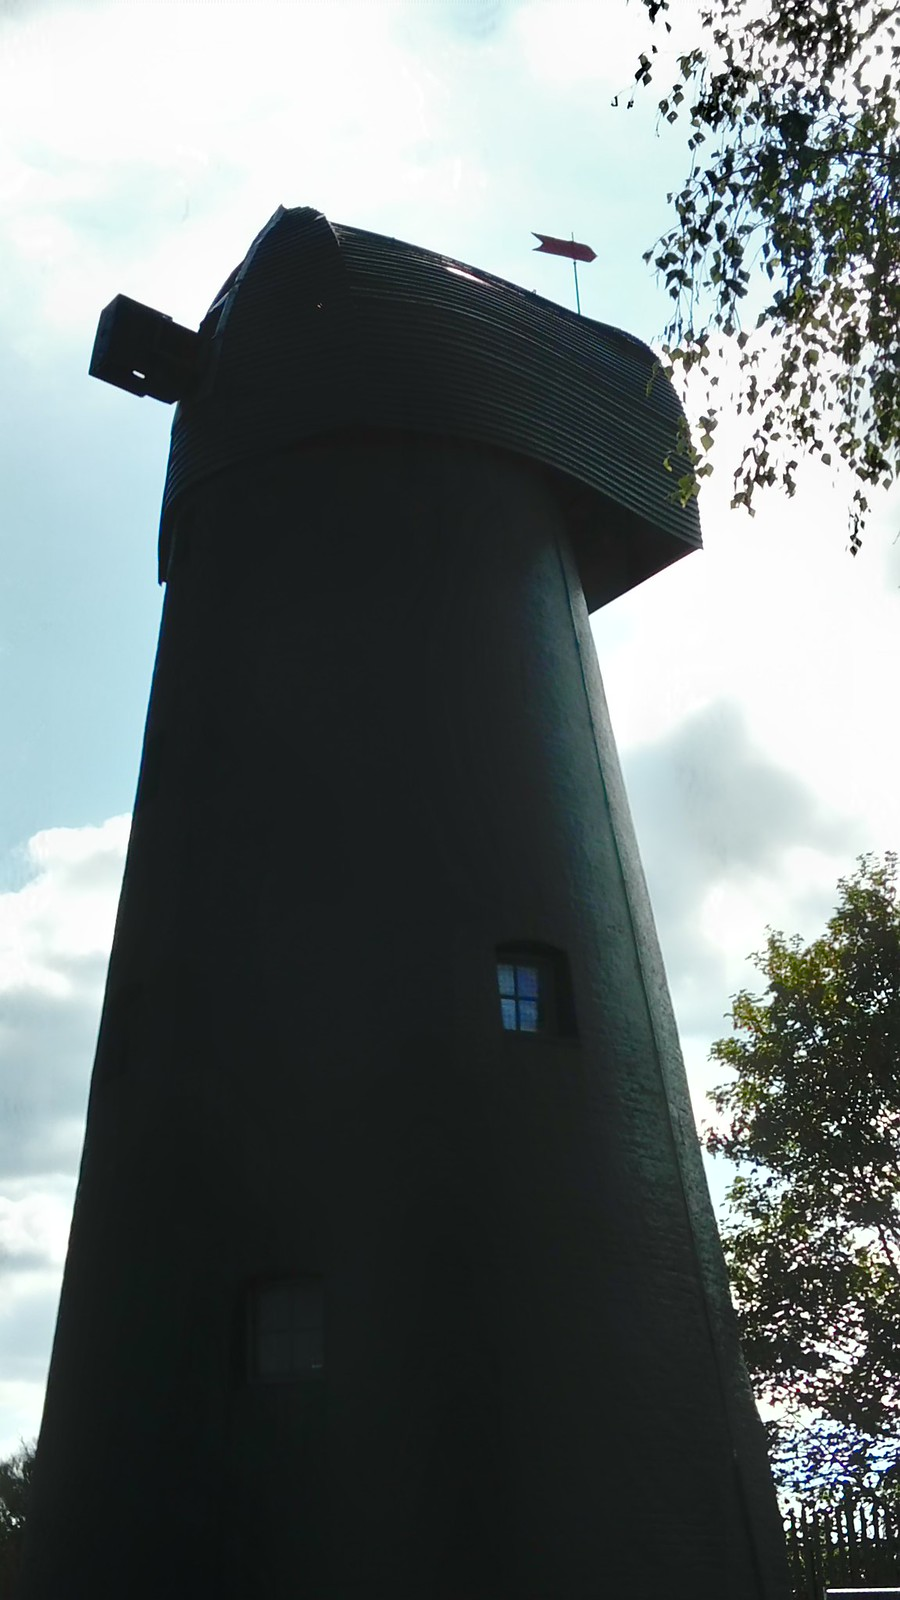 Brixton Windmill SWC Short Walk 39 - Brockwell Park (Herne Hill Circular or to Brixton)